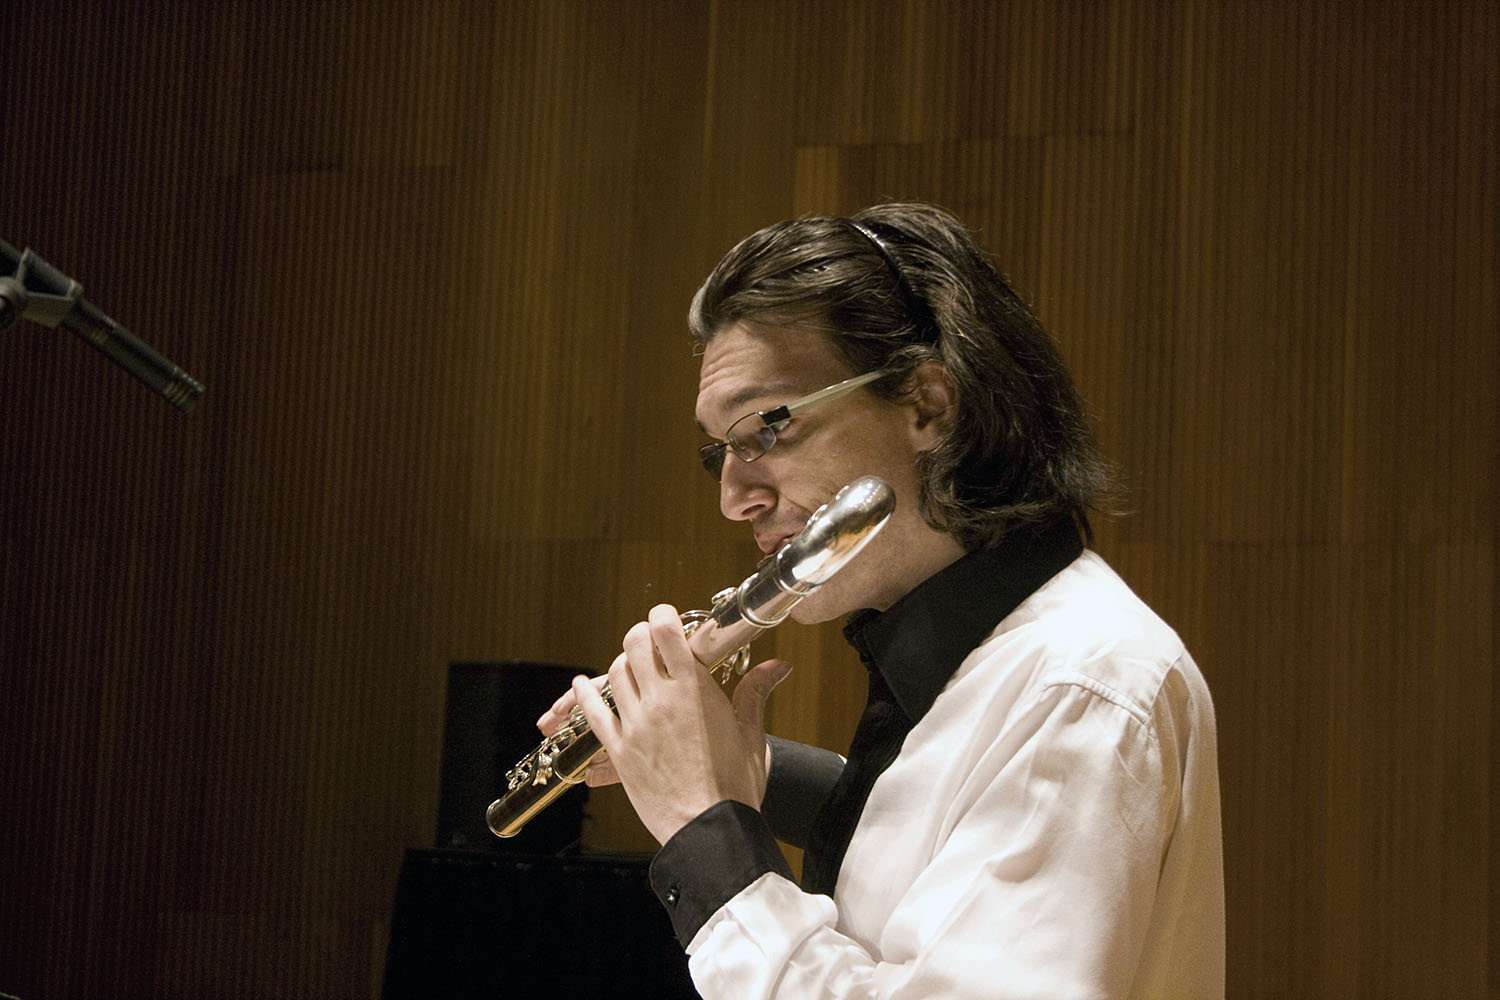 Mario Caroli Flutist With The Slee Sinfonietta Conducted By Brad Lubman In Performance Of David Felders Inner Sky  3